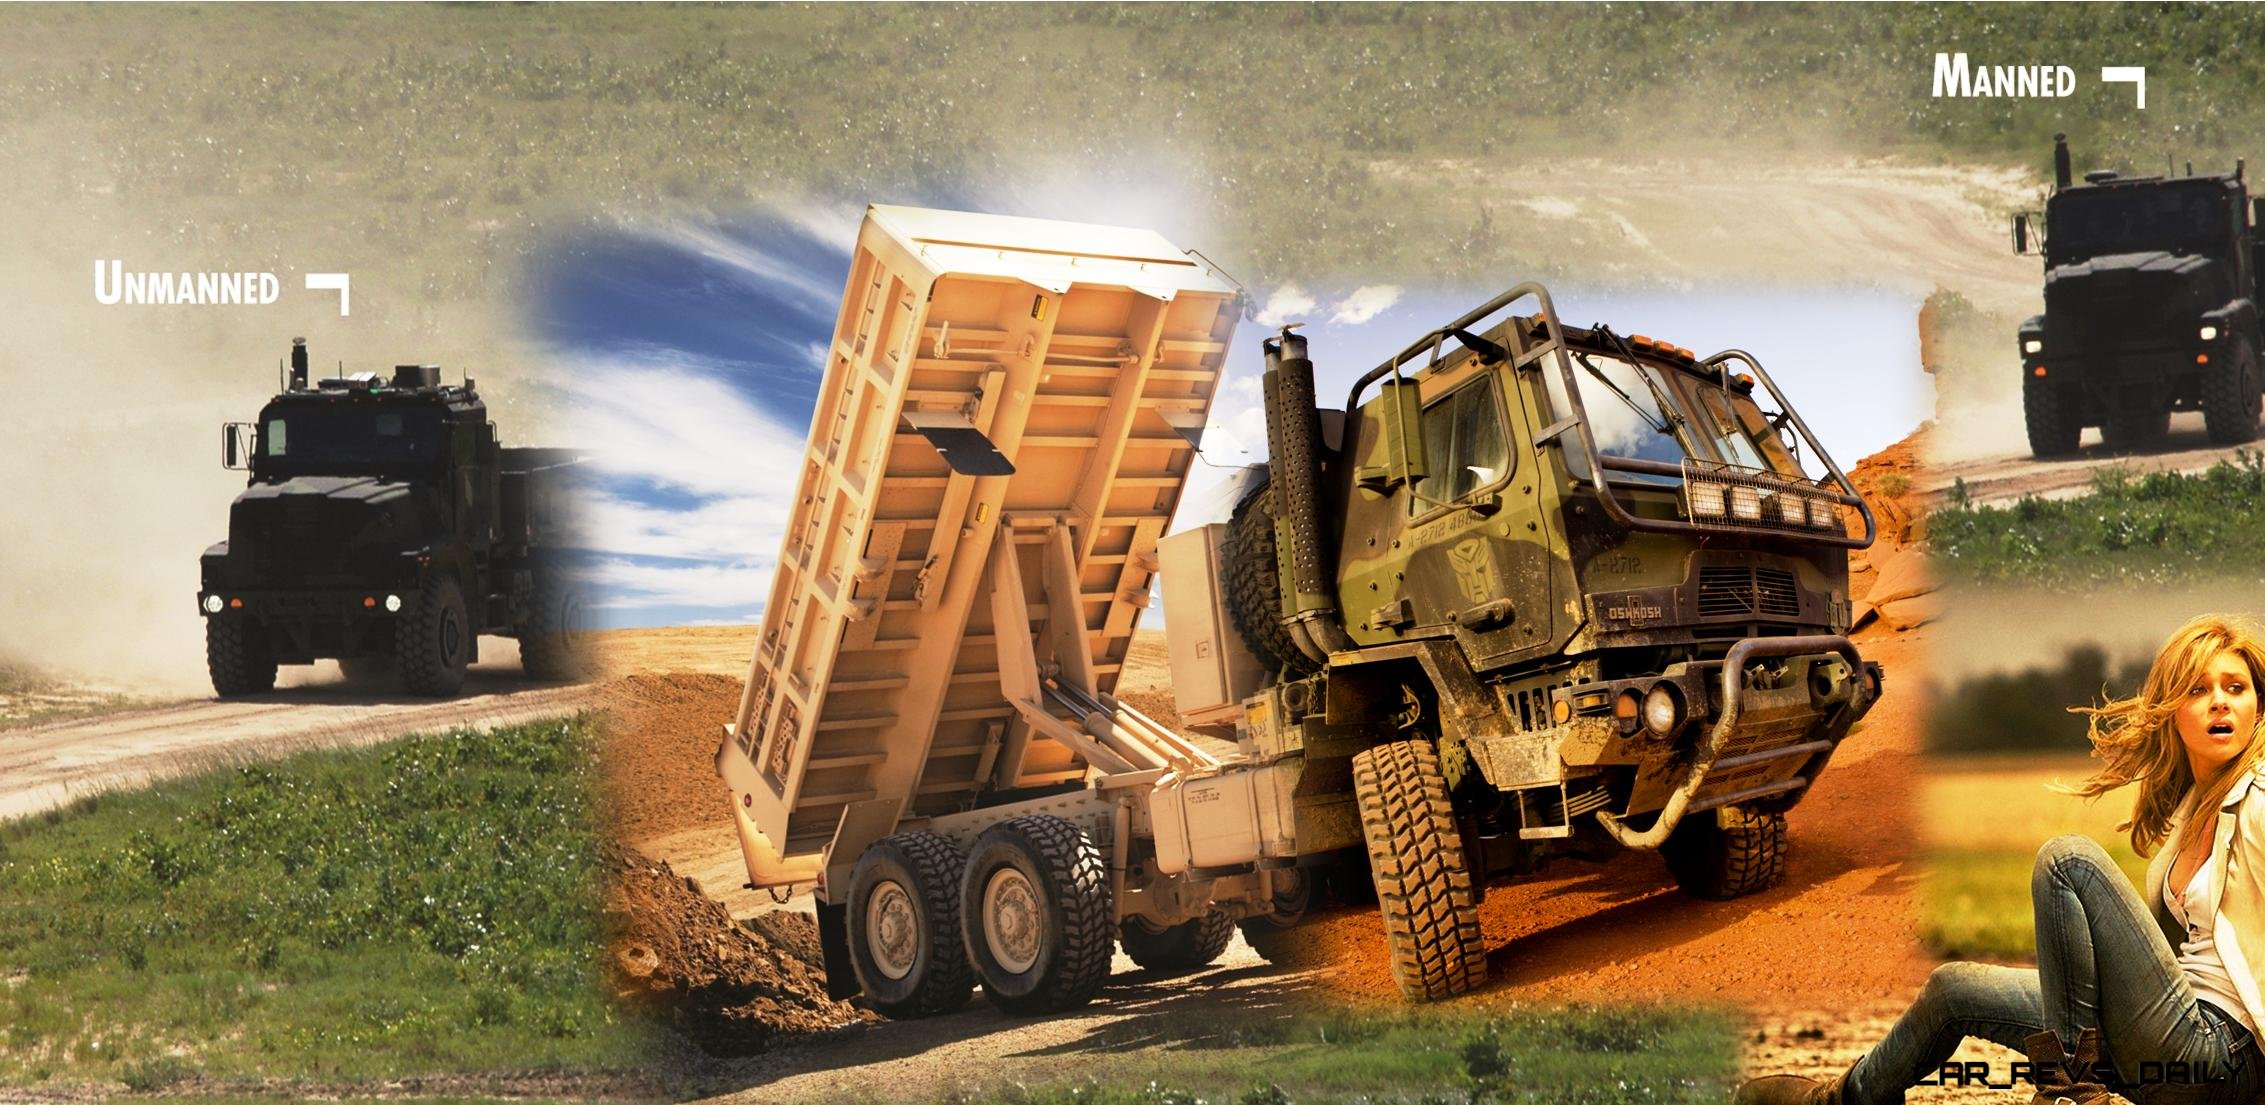 Oshkosh Transformers4 Header graphic